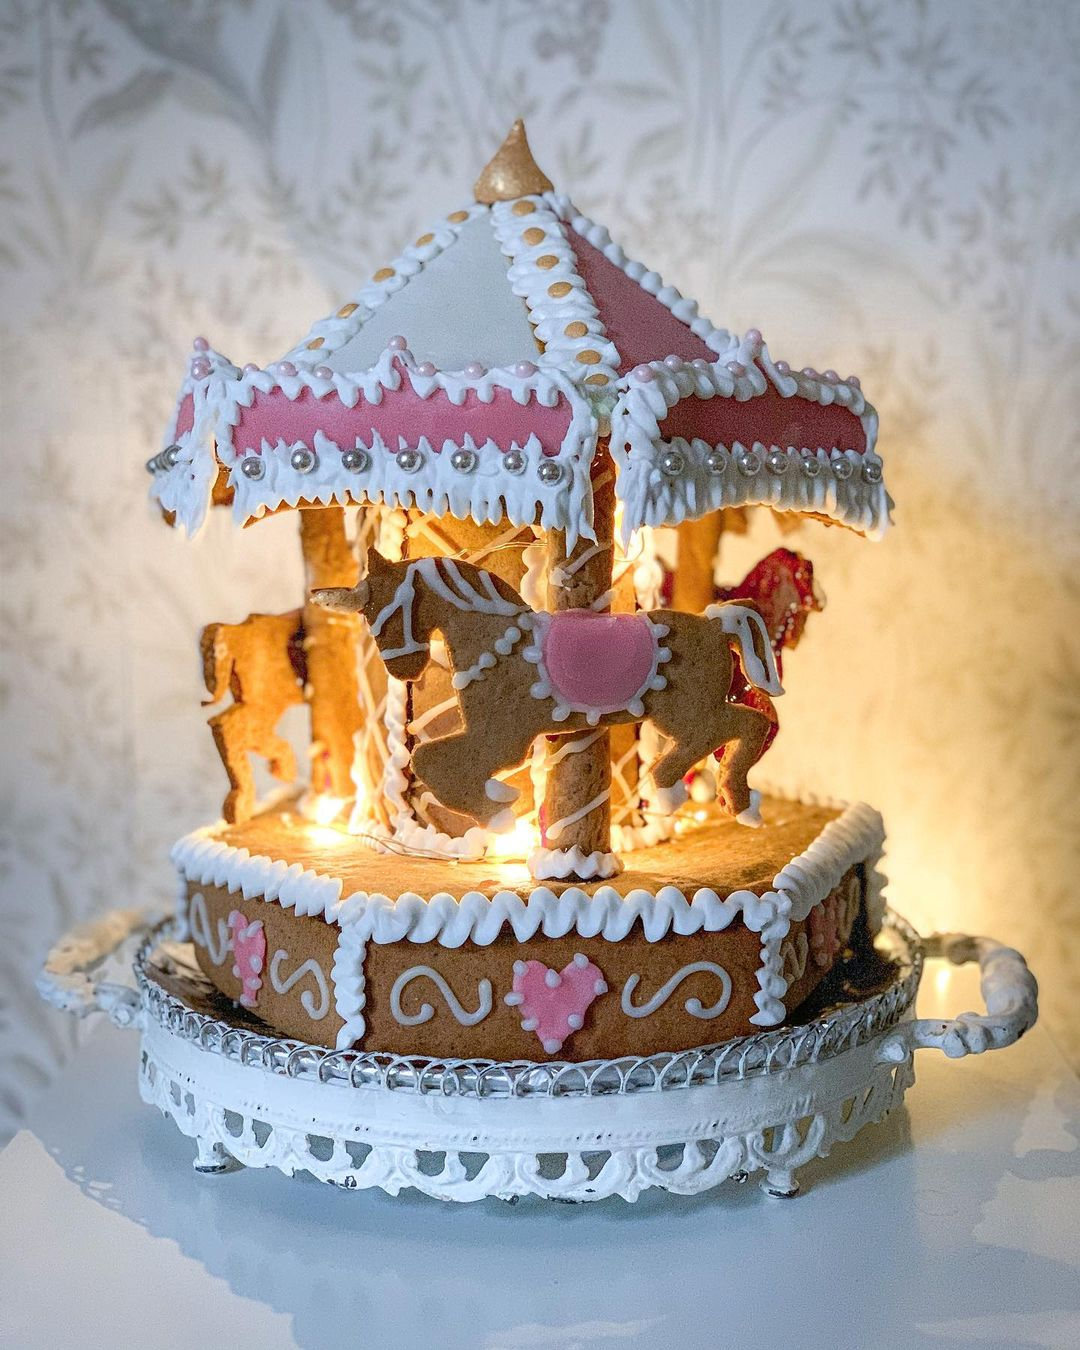 25 magical gingerbread houses to feast your eyes on